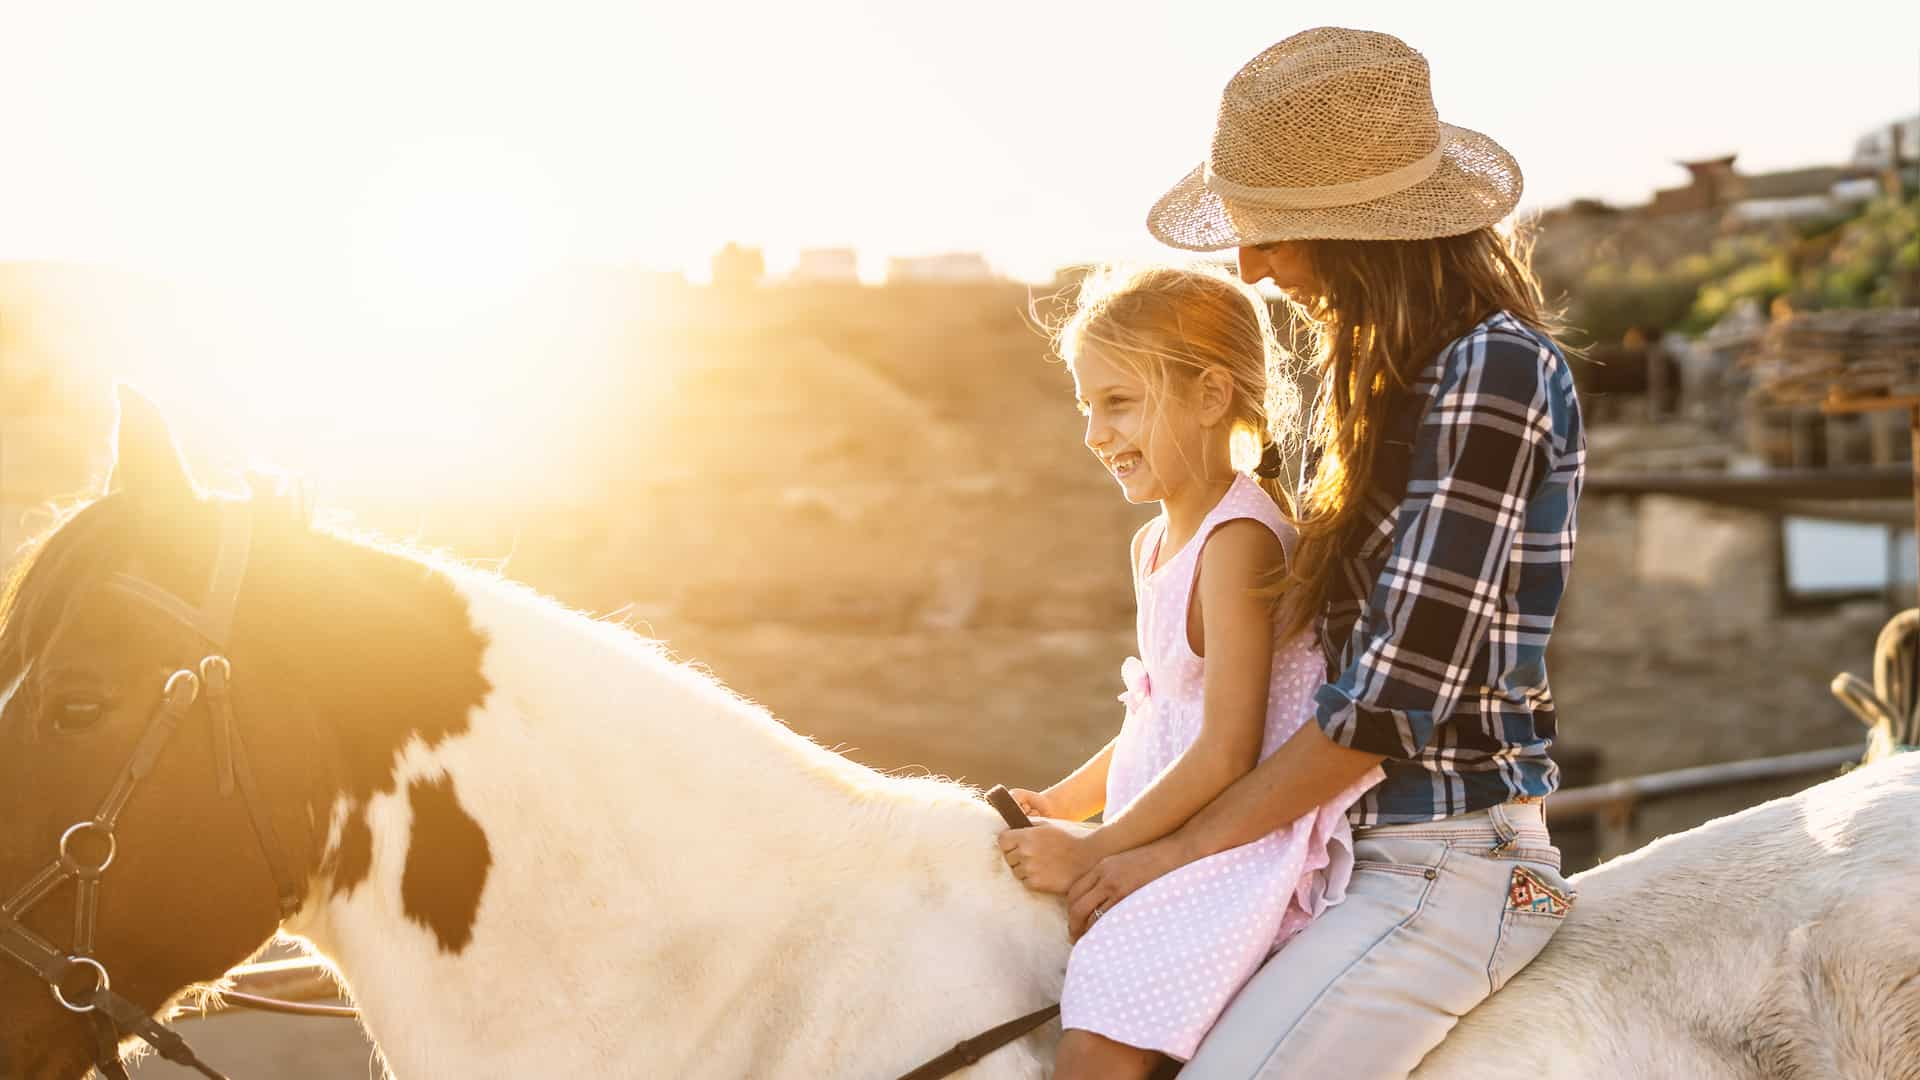 Happy family with mother and daughter on a horse on a farm in Texas, USA